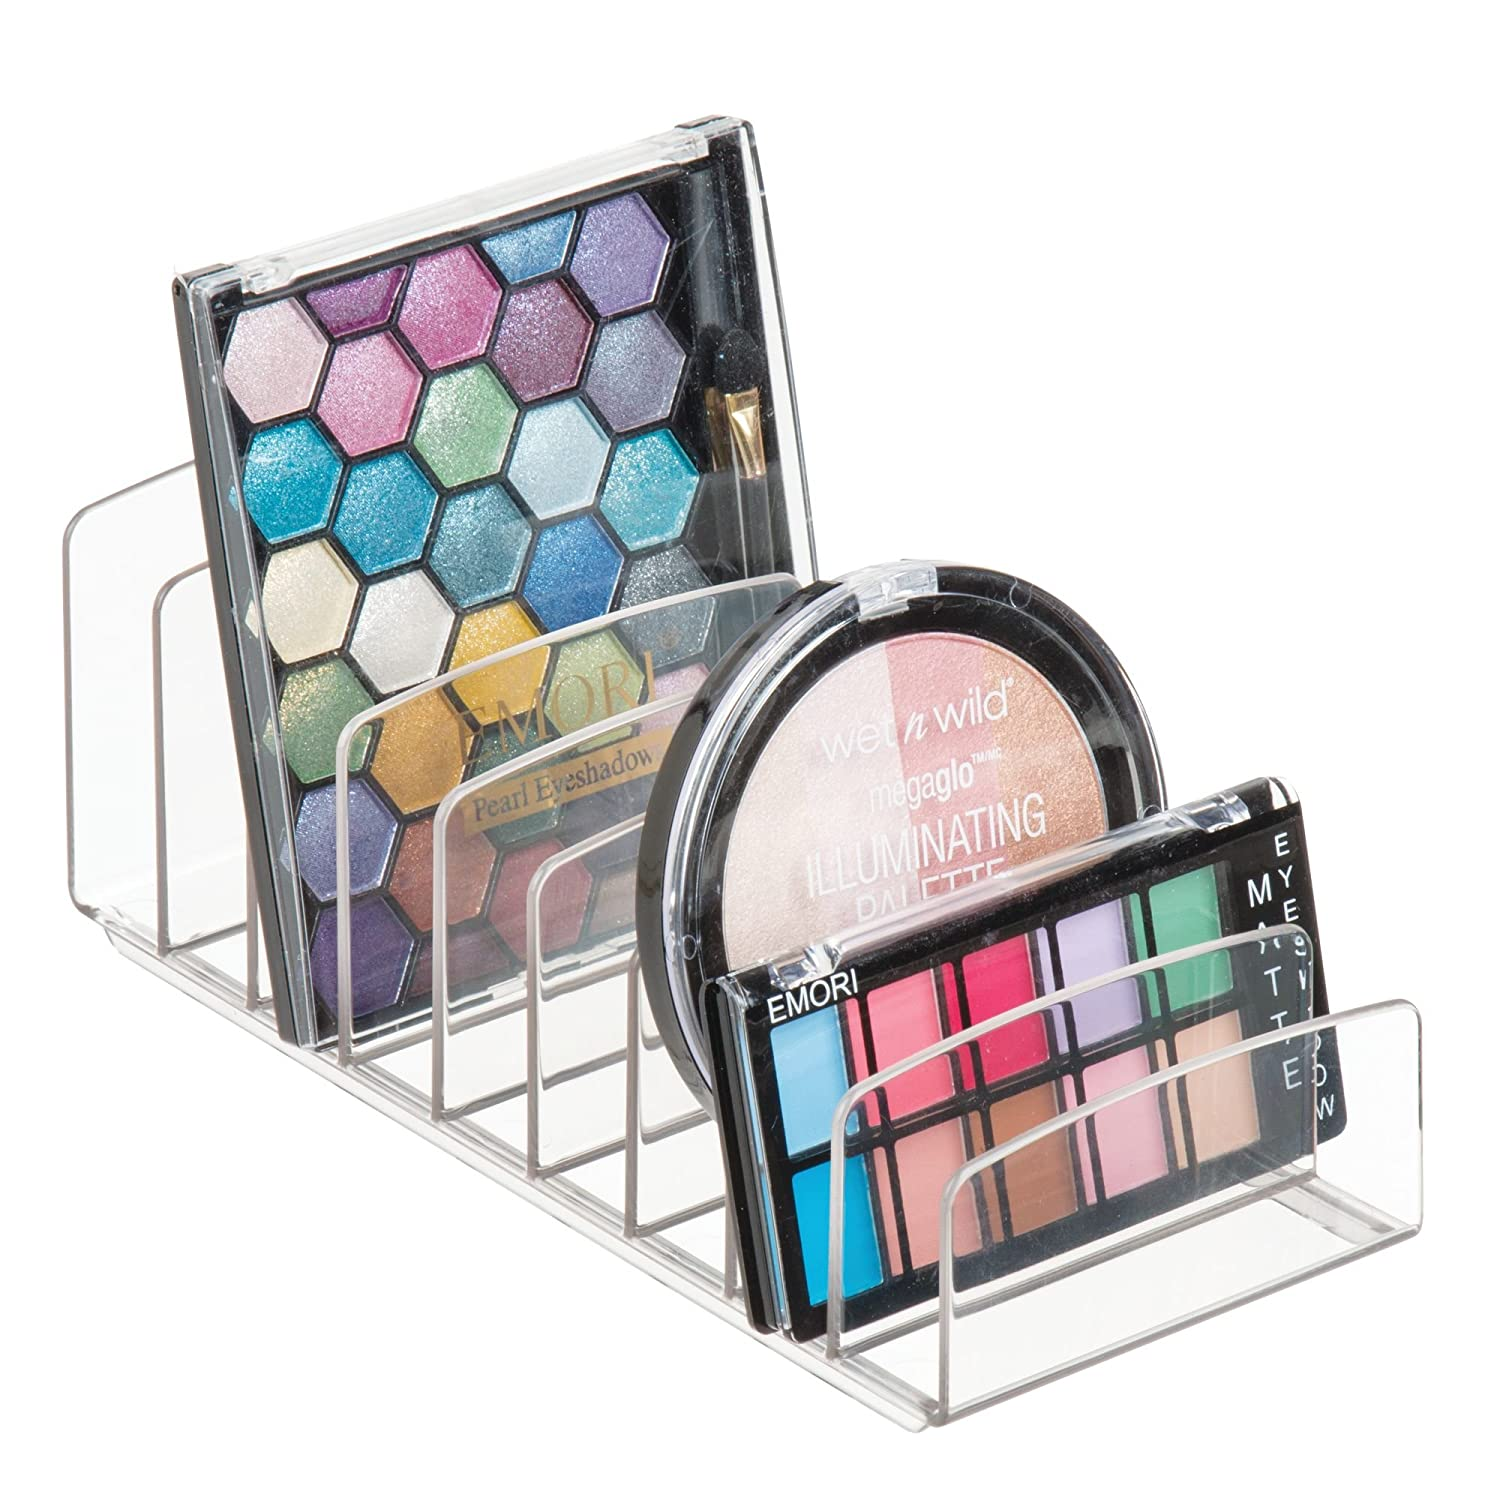 "InterDesign Clarity Vertical Plastic Palette Organizer for Storage of Cosmetics, Makeup, and Accessories on Vanity, Countertop, or Cabinet, 9.25"" x 3.86"" x 3.20"","